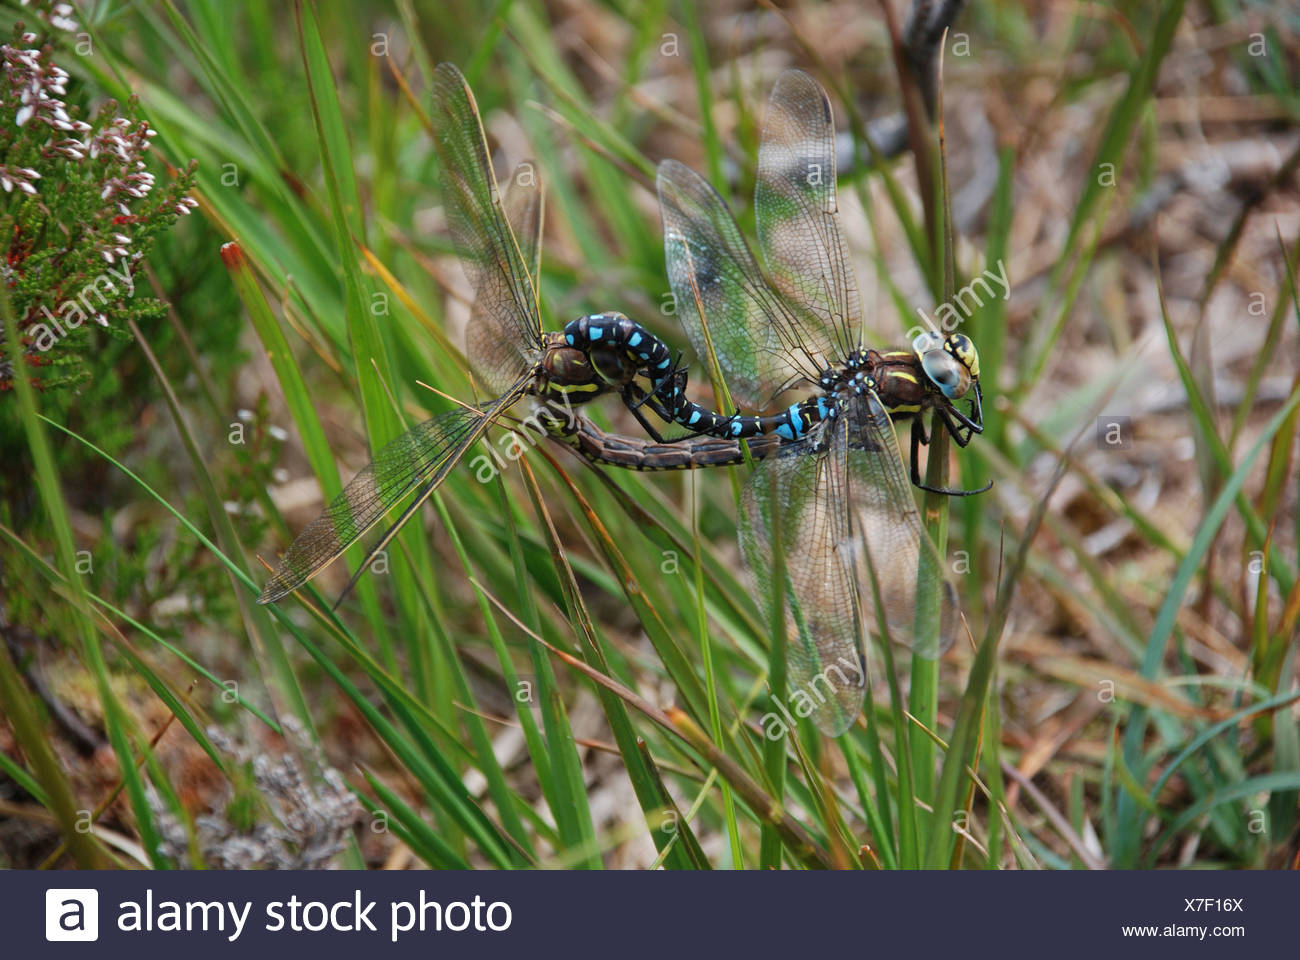 Emperor dragonflies (Anax imperator) mating in vegetation. - Stock Image